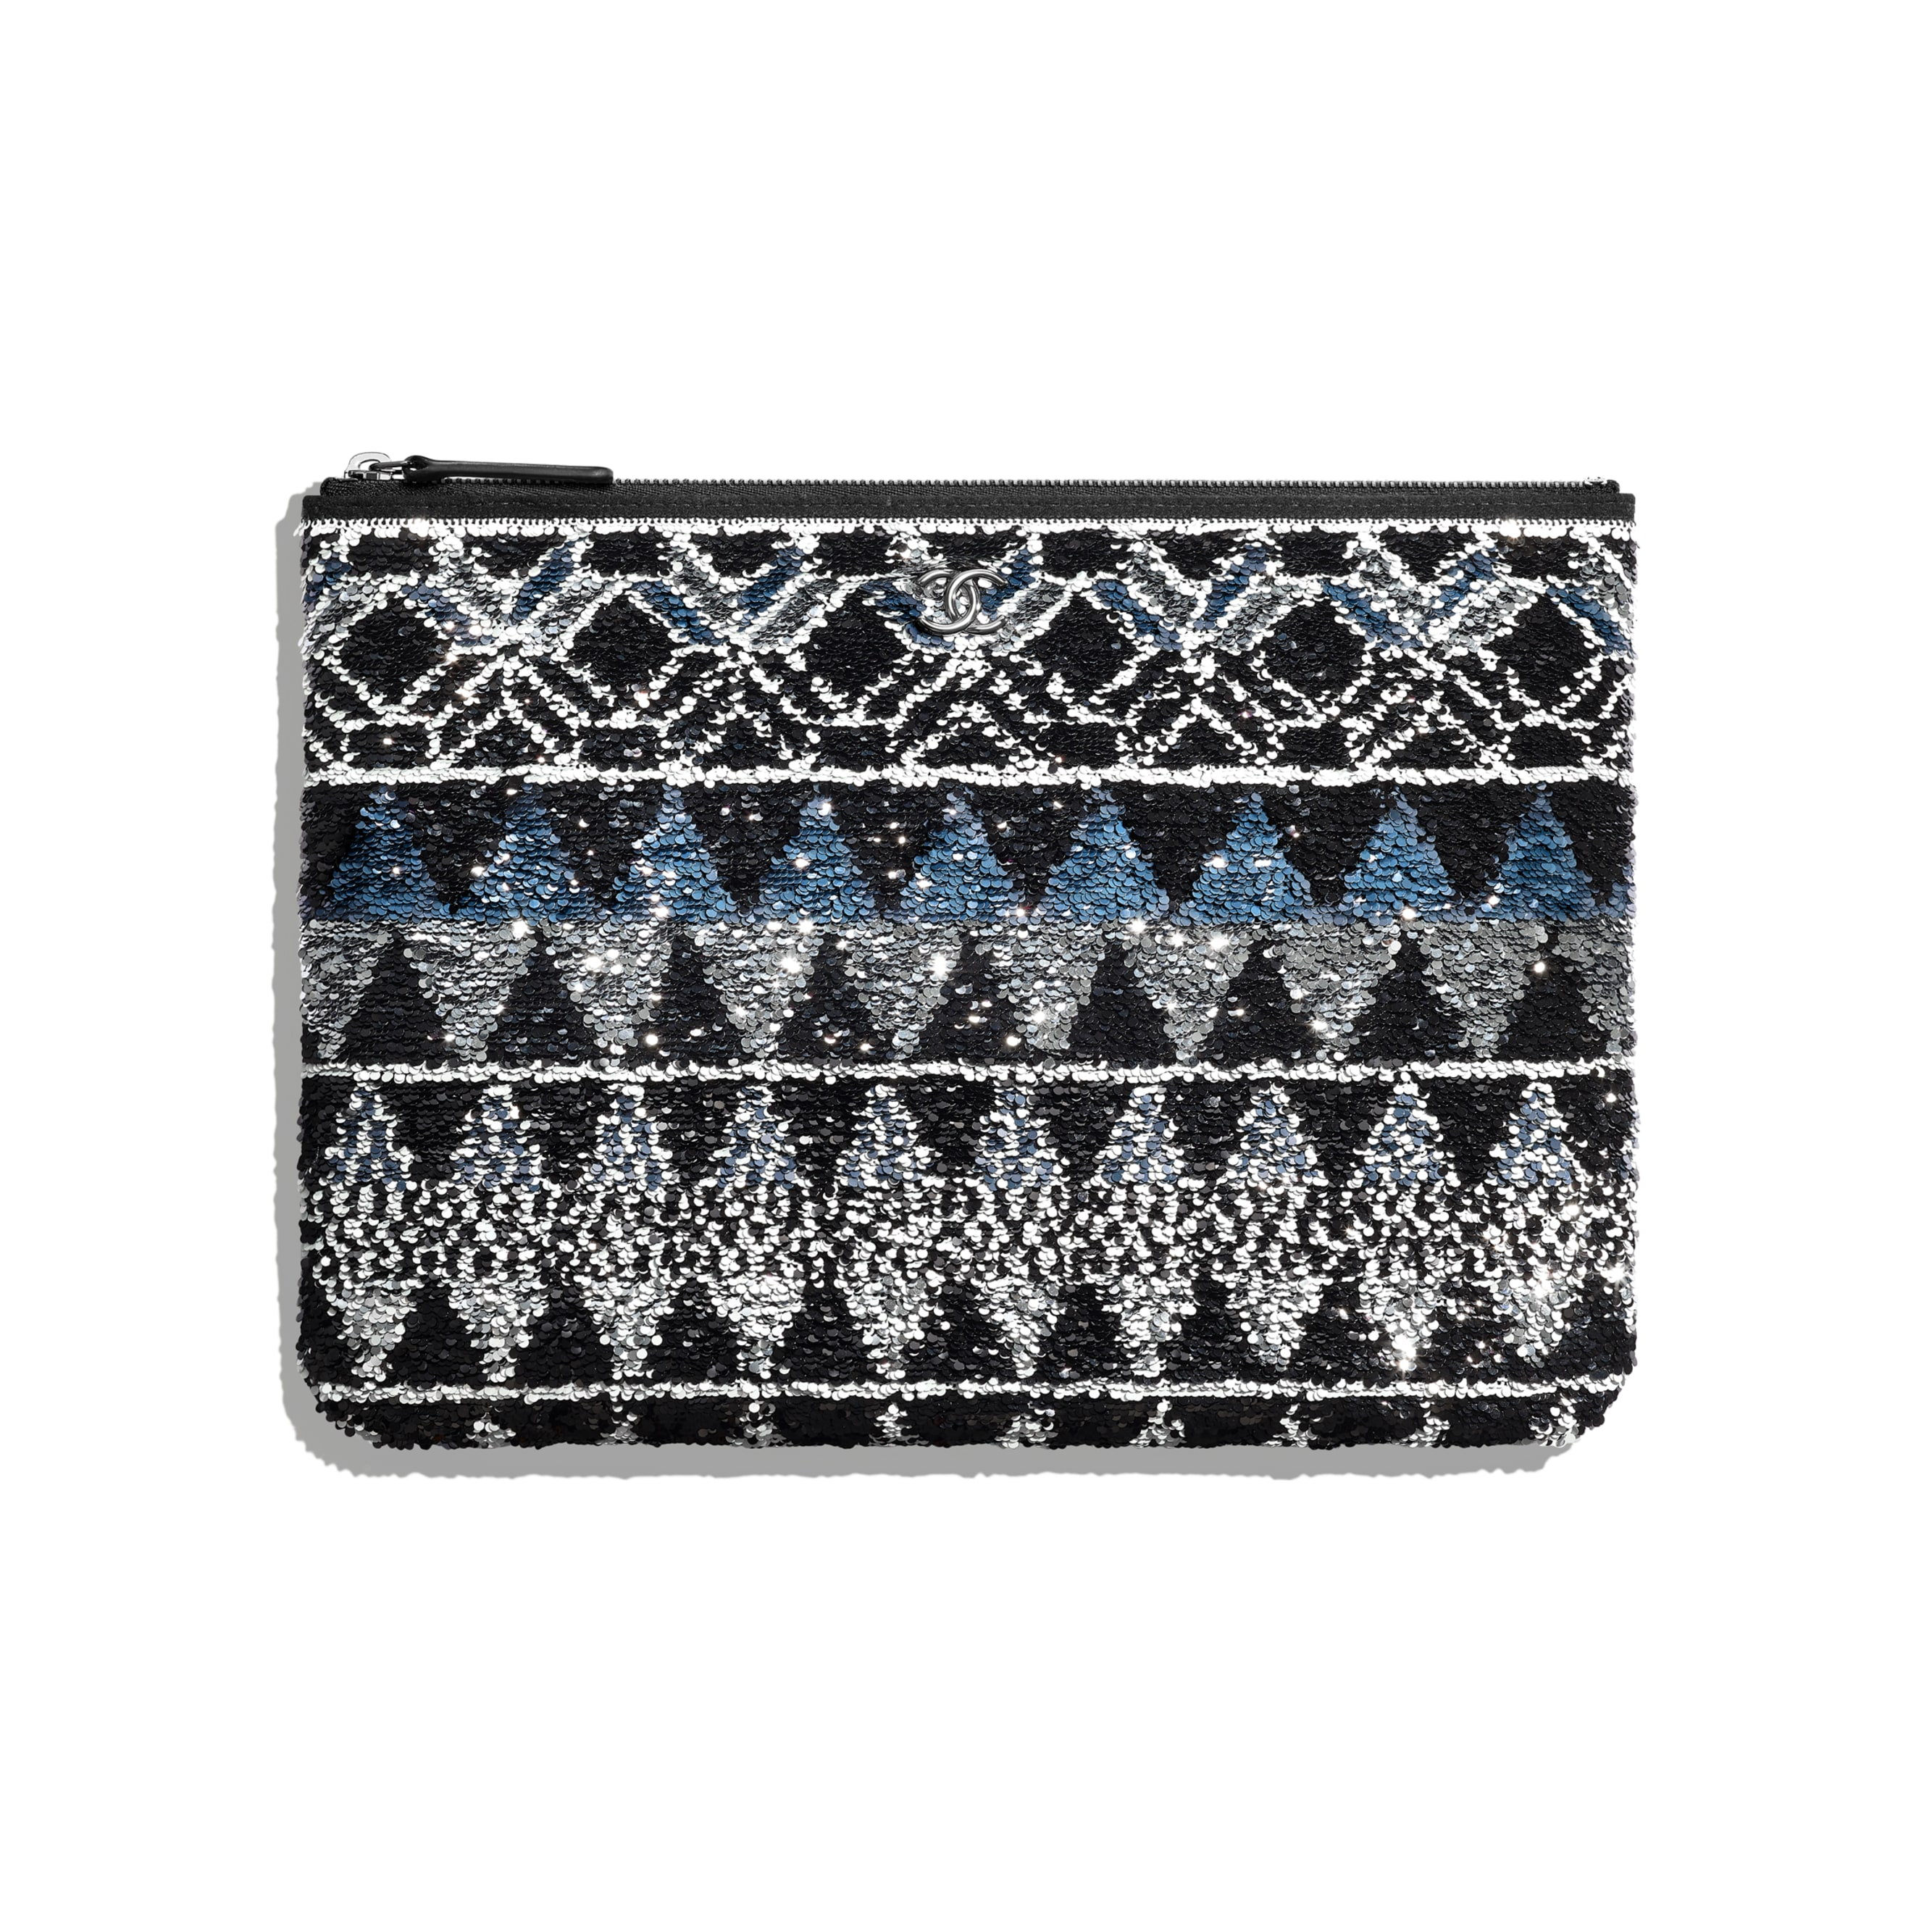 Pouch - Silver & Black - Sequins, Wool Felt & Ruthenium-Finish Metal - Default view - see standard sized version